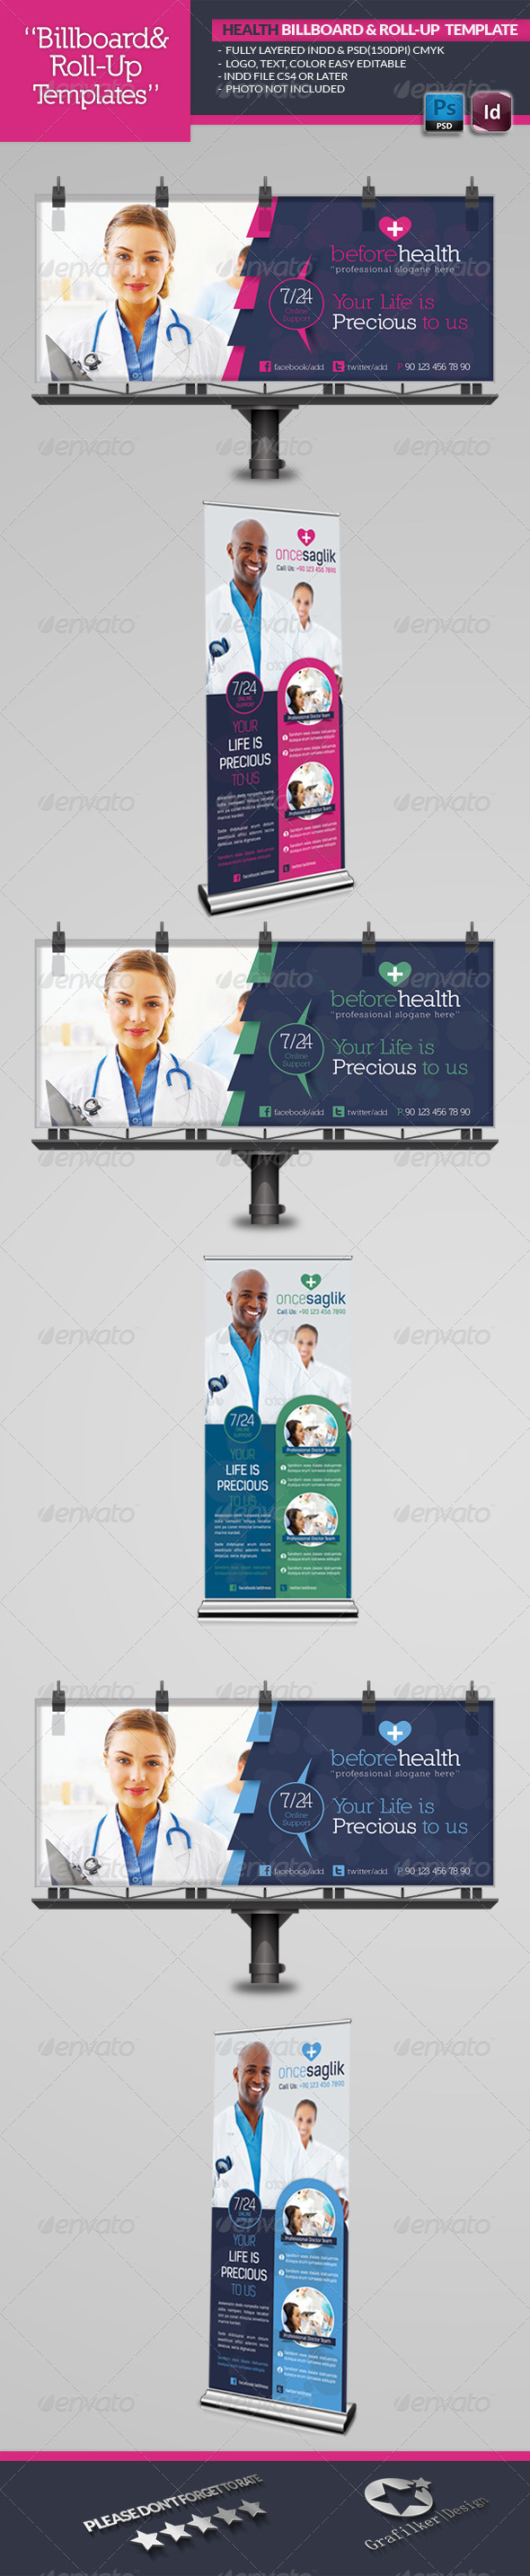 Health Roll-Up Template - Signage Print Templates